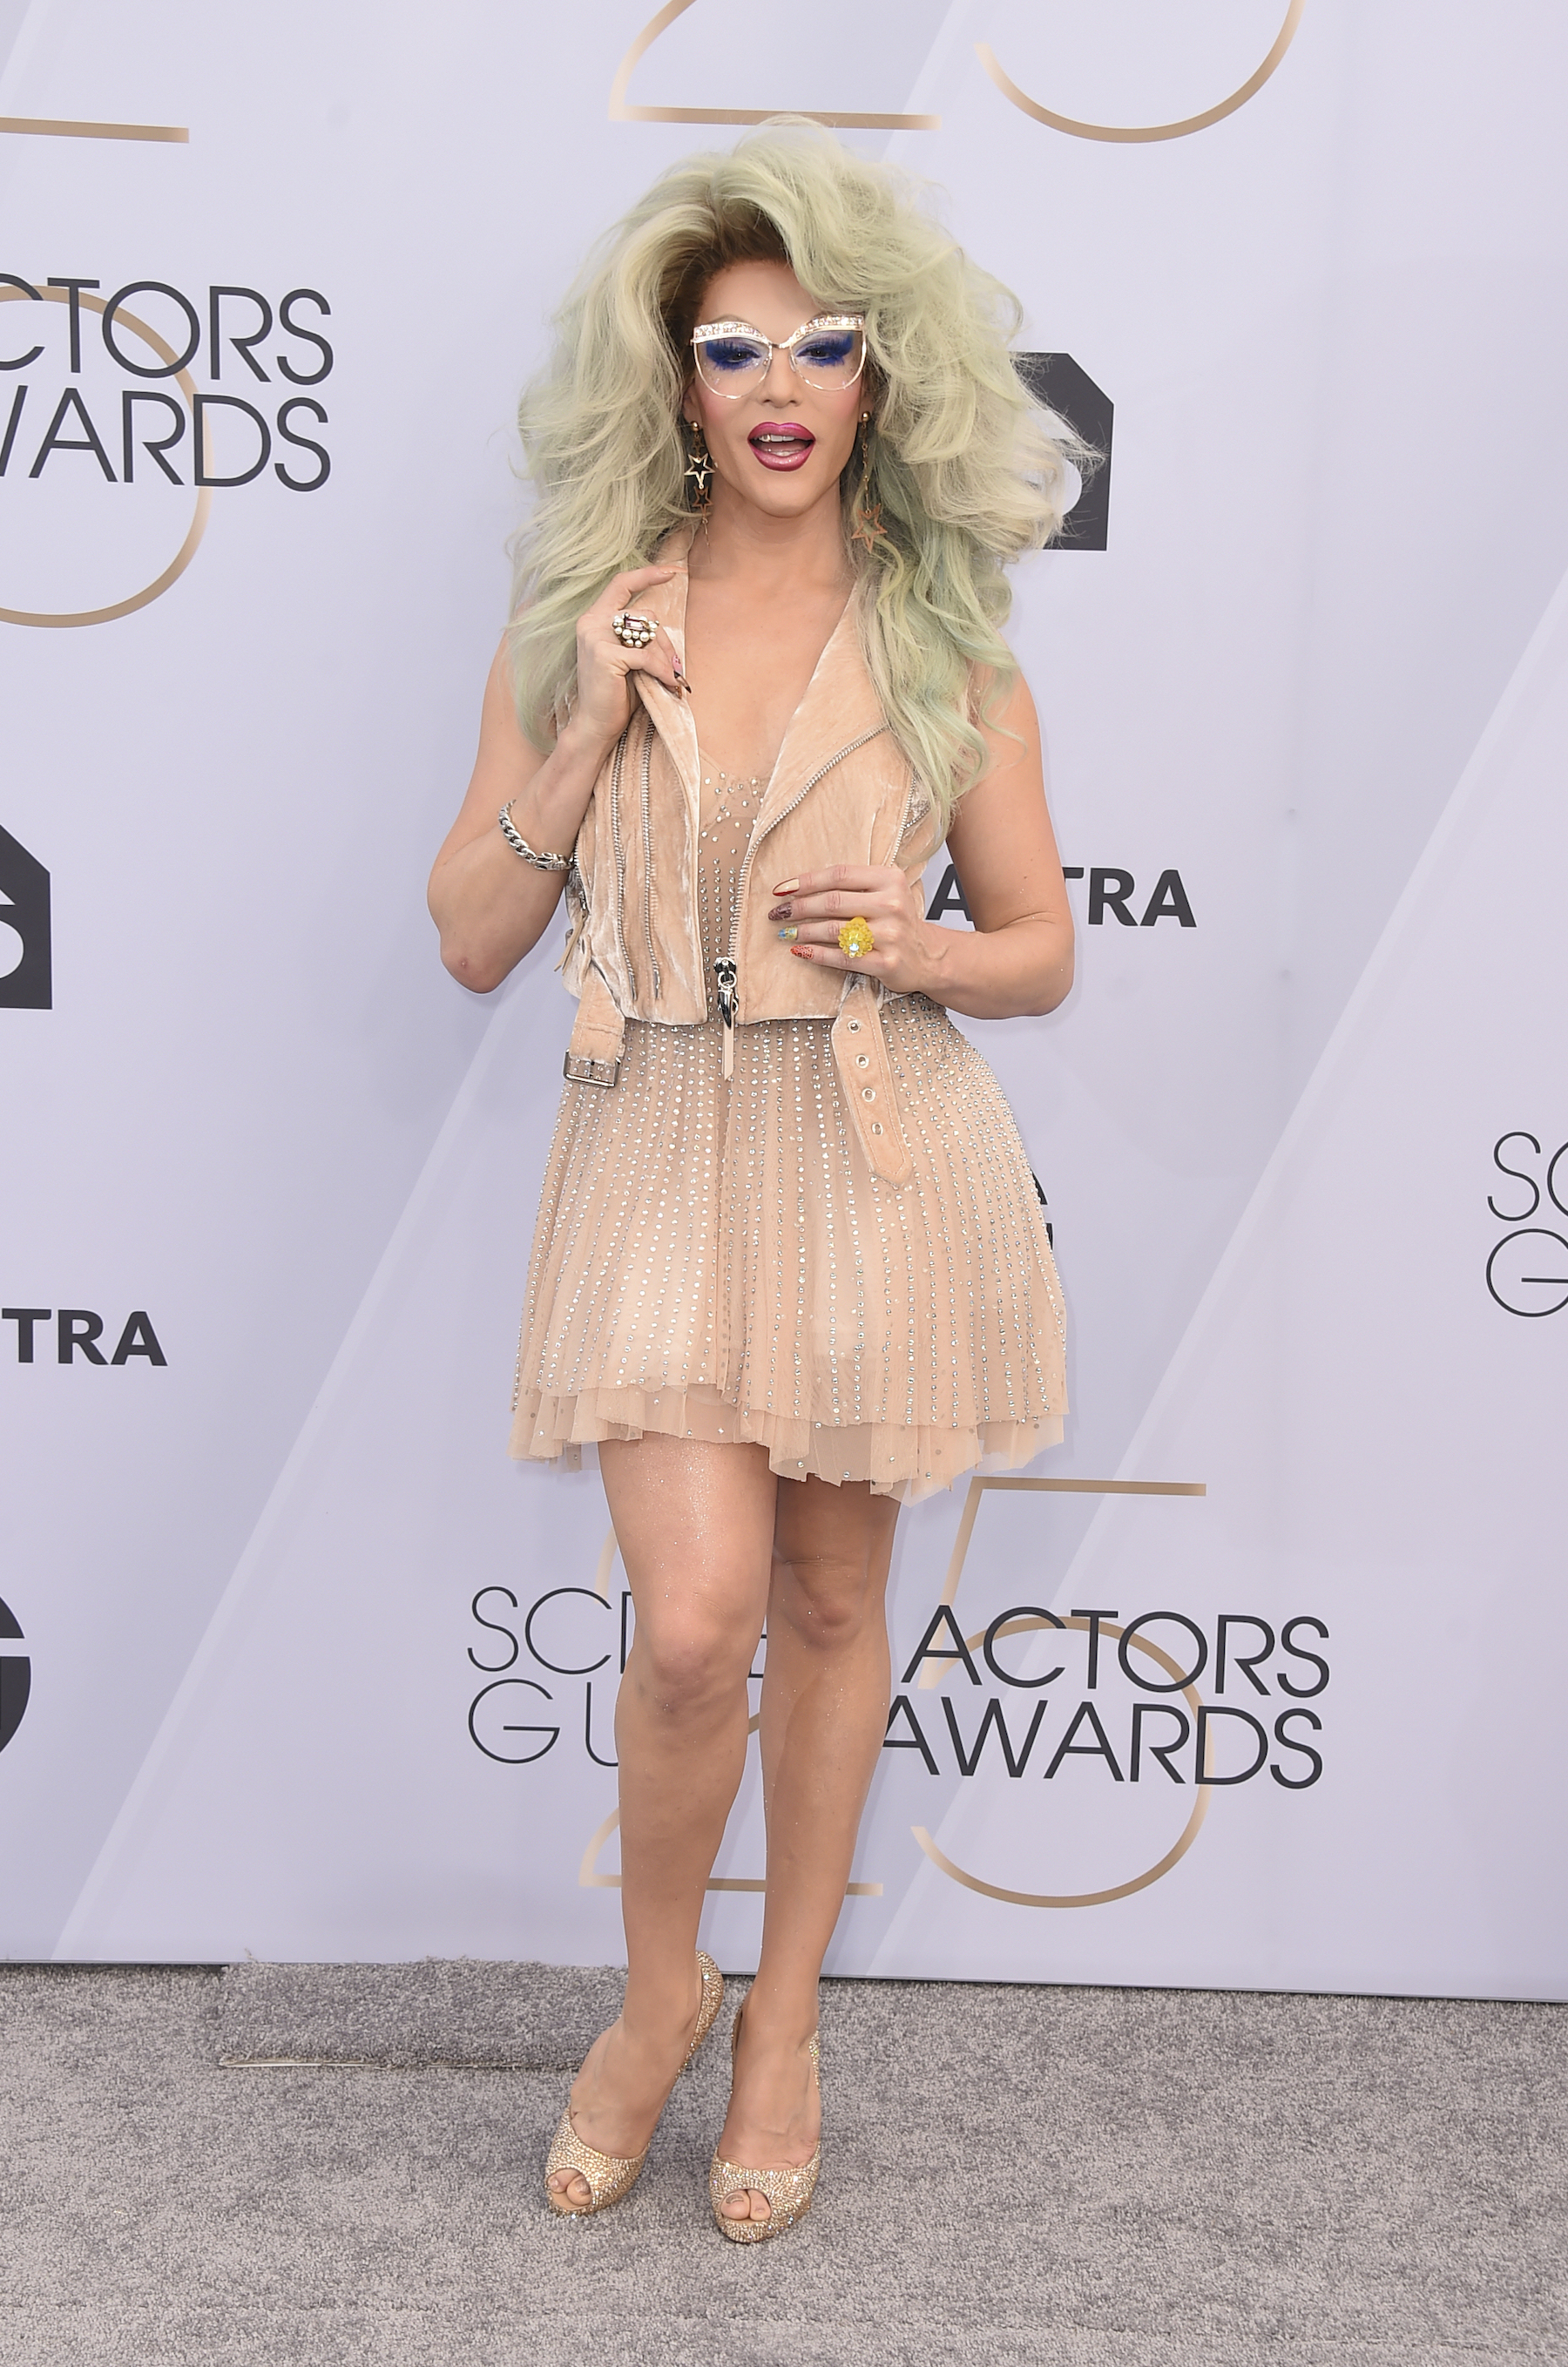 <div class='meta'><div class='origin-logo' data-origin='AP'></div><span class='caption-text' data-credit='Jordan Strauss/Invision/AP'>Willam Belli arrives at the 25th annual Screen Actors Guild Awards at the Shrine Auditorium & Expo Hall on Sunday, Jan. 27, 2019, in Los Angeles.</span></div>